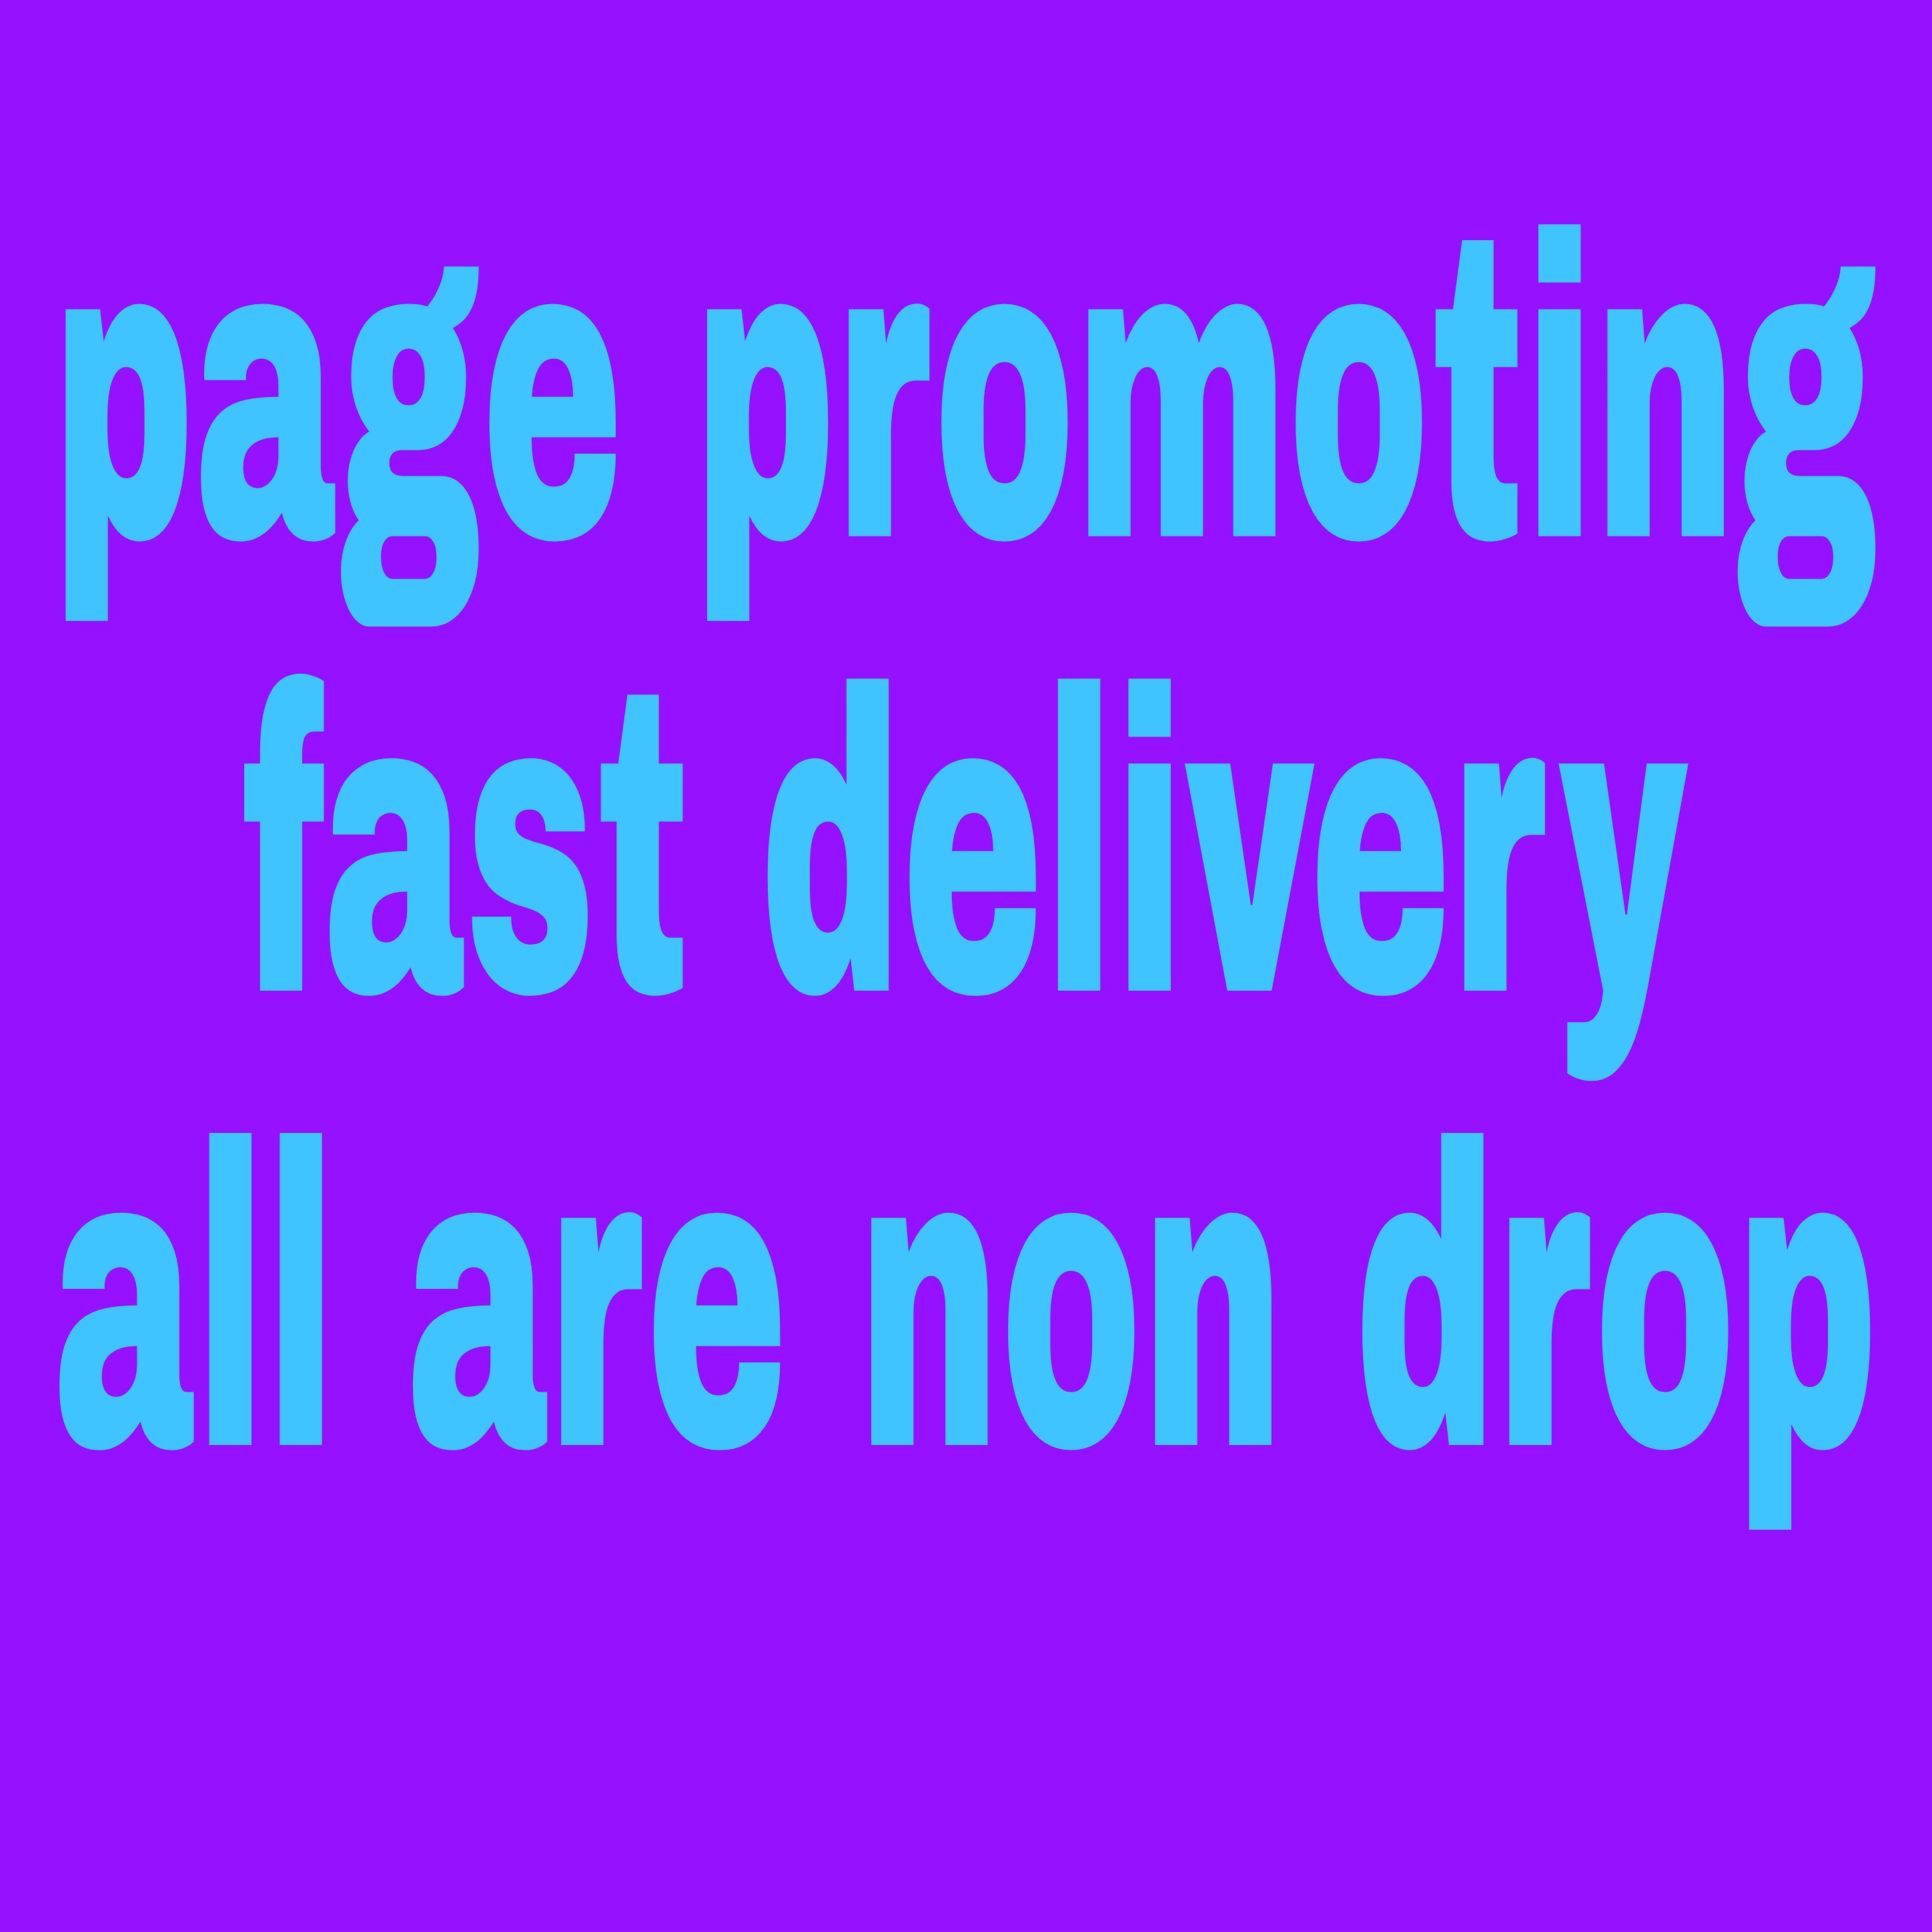 100+ naturally grow world wide page promotion with fast delivery